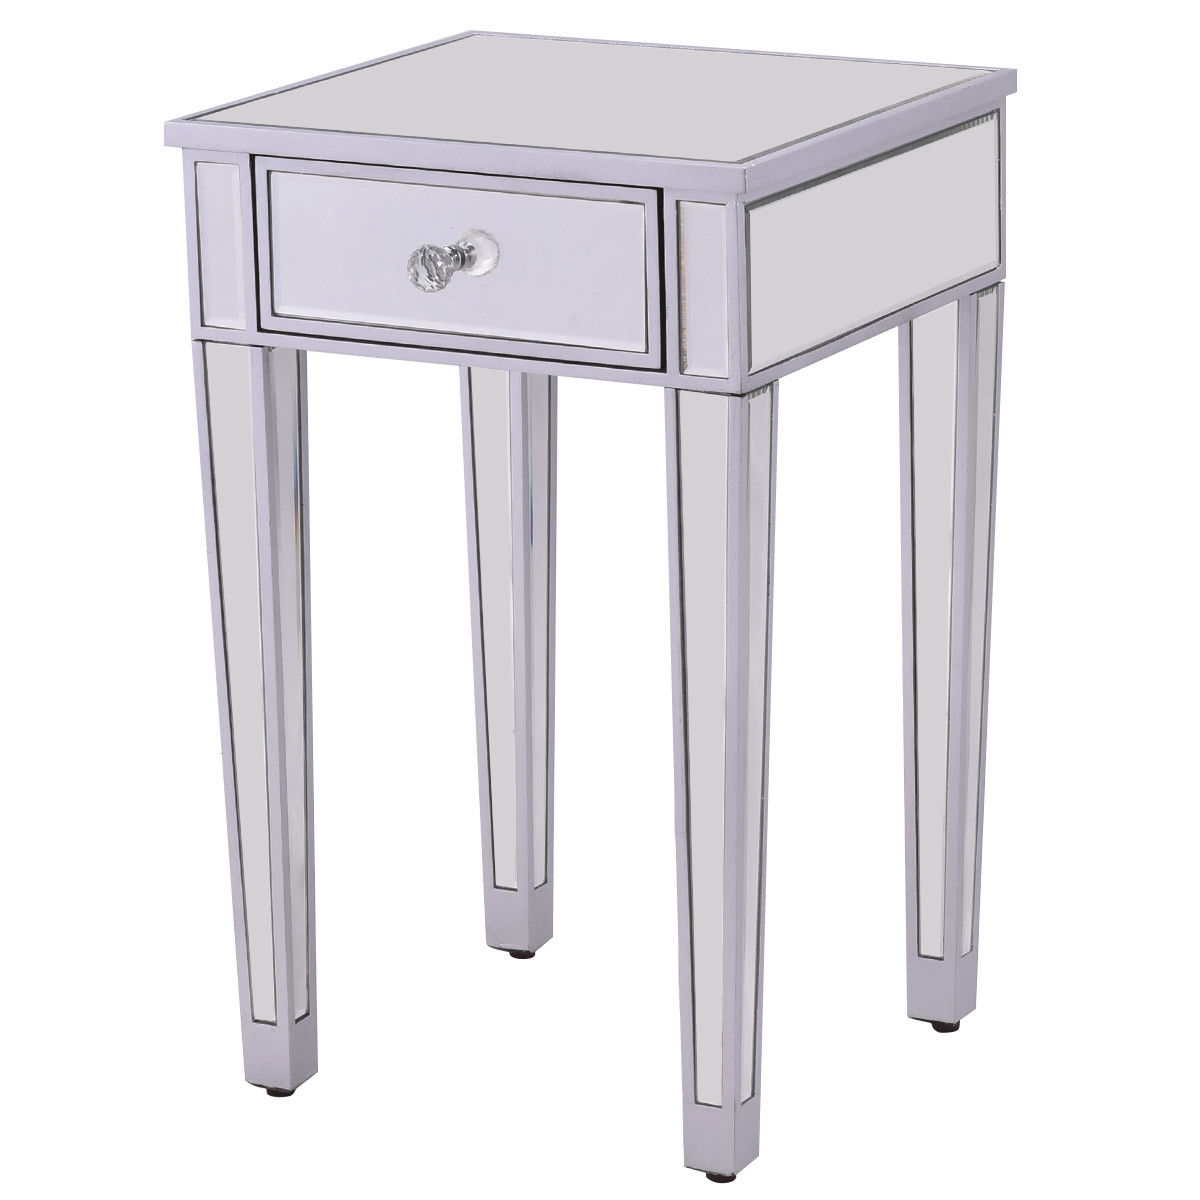 fascinating Mirrored Accent Table With Drawer Part - 2: Costway 2 PCS Mirrored Accent Table Nightstand End Table Storage Cabinet  Drawer 5